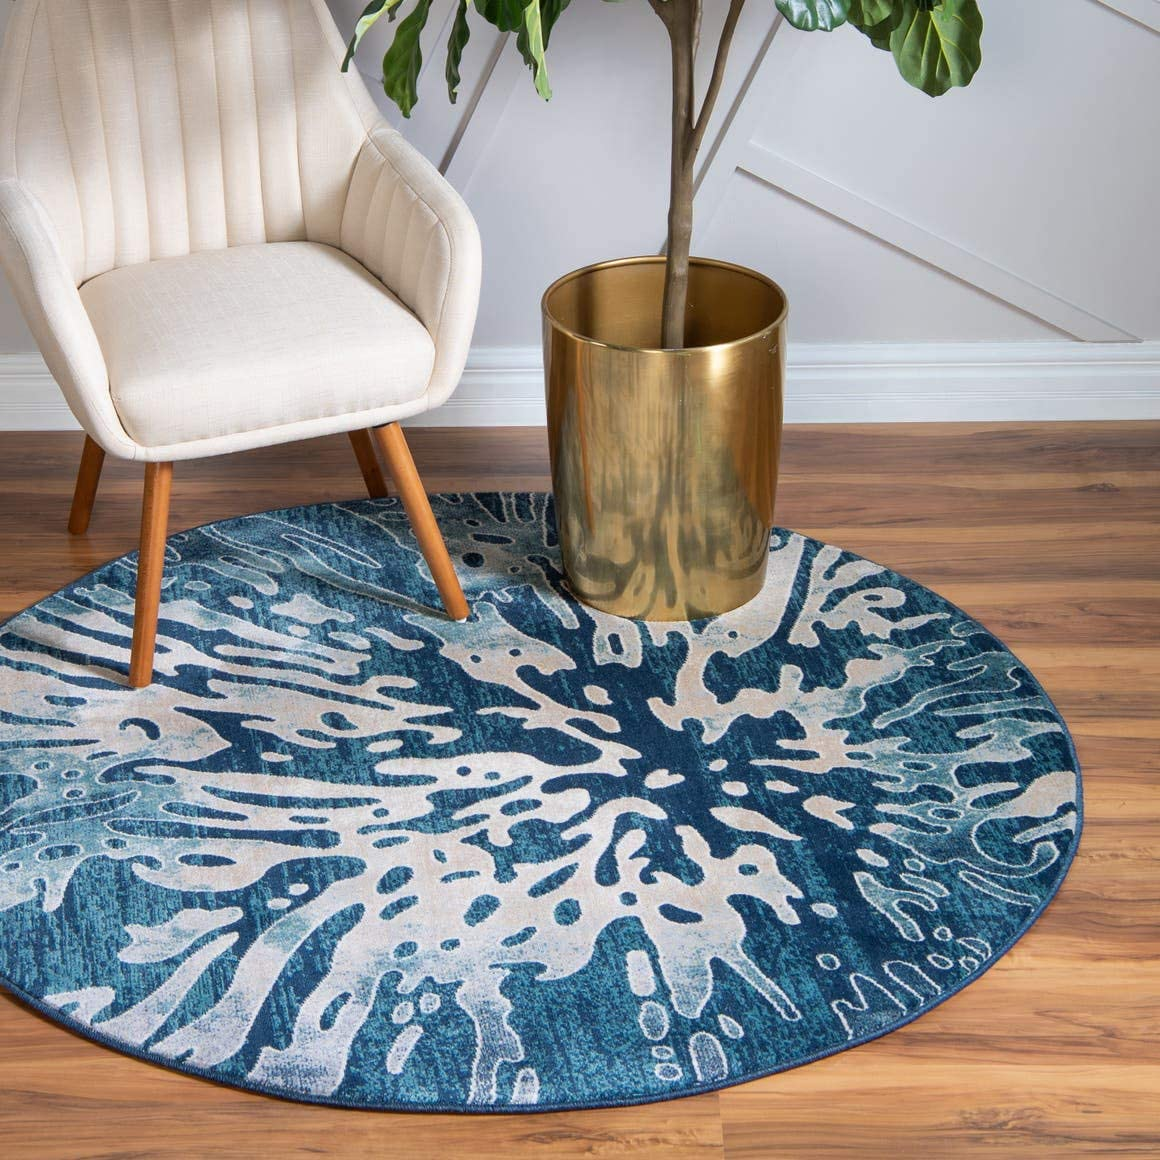 Unique Loom Mystic Collection Abstract Vintage Water Navy Blue Round Rug 5 0 x 5 0